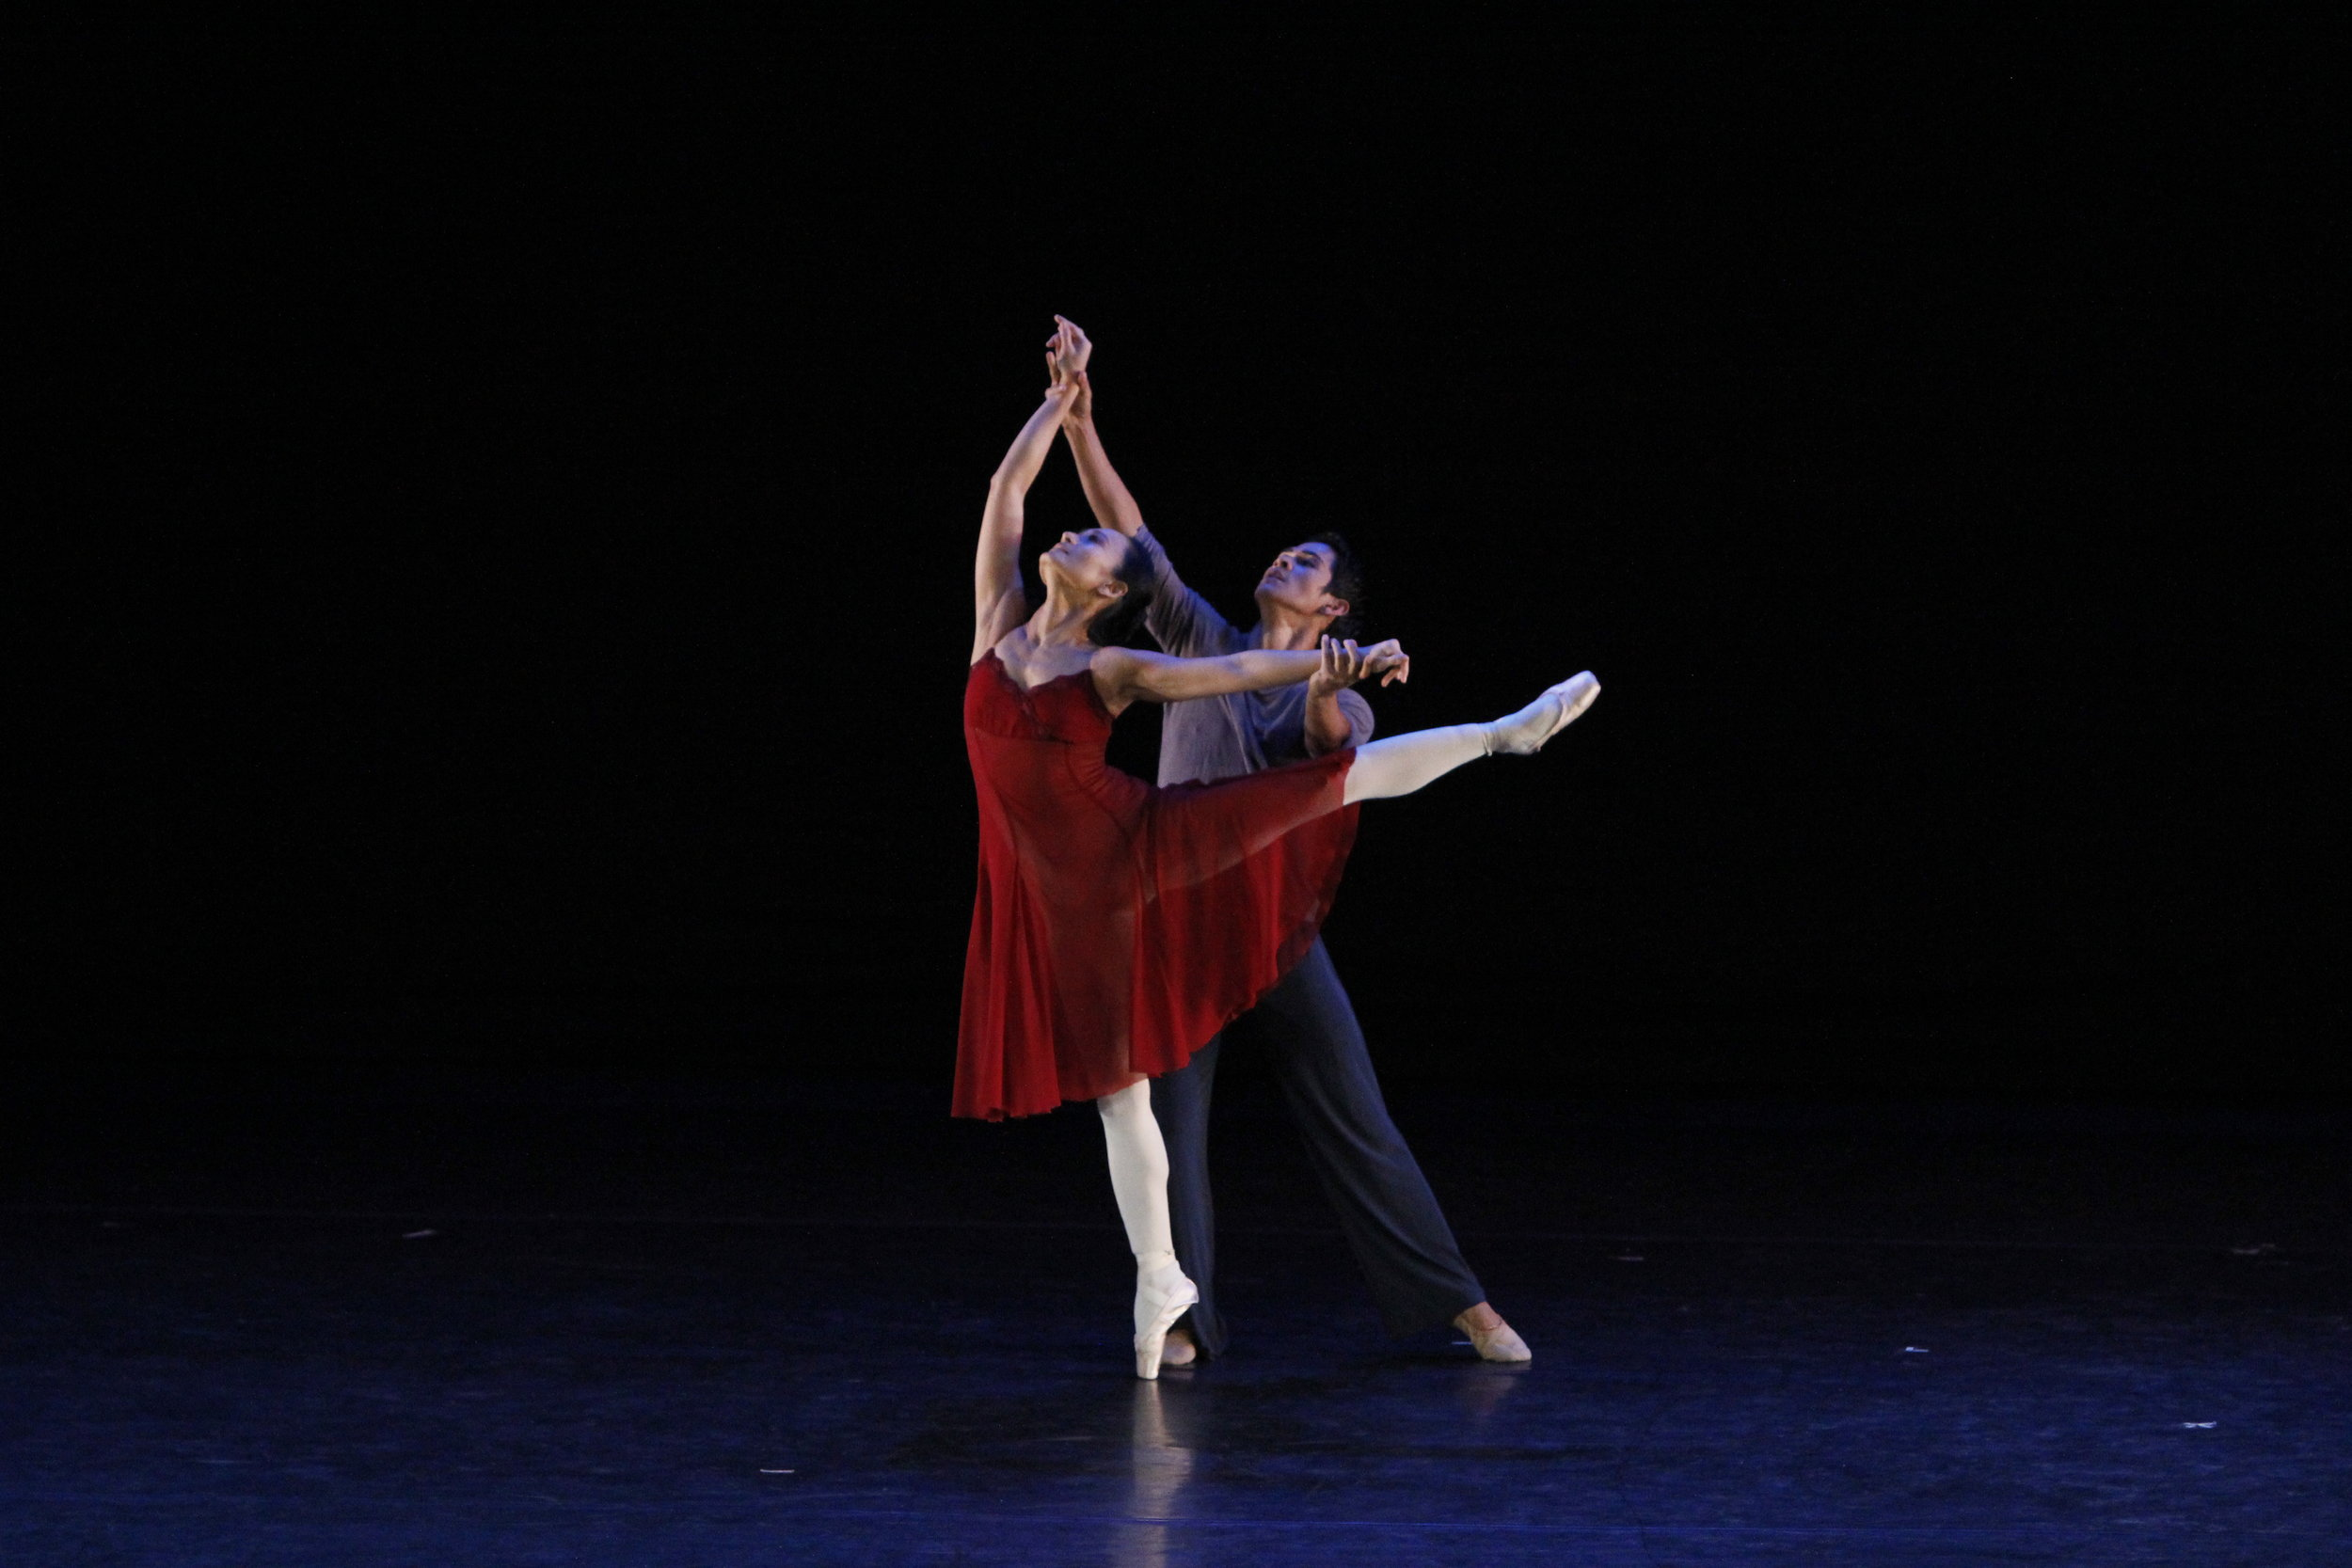 """Lisa Macuja-Elizalde and Rudy de Dios are featured in the haunting choreography, The Last Poem, by Augustus """"Bam"""" Damian. Photo by Ocs Alvarez"""